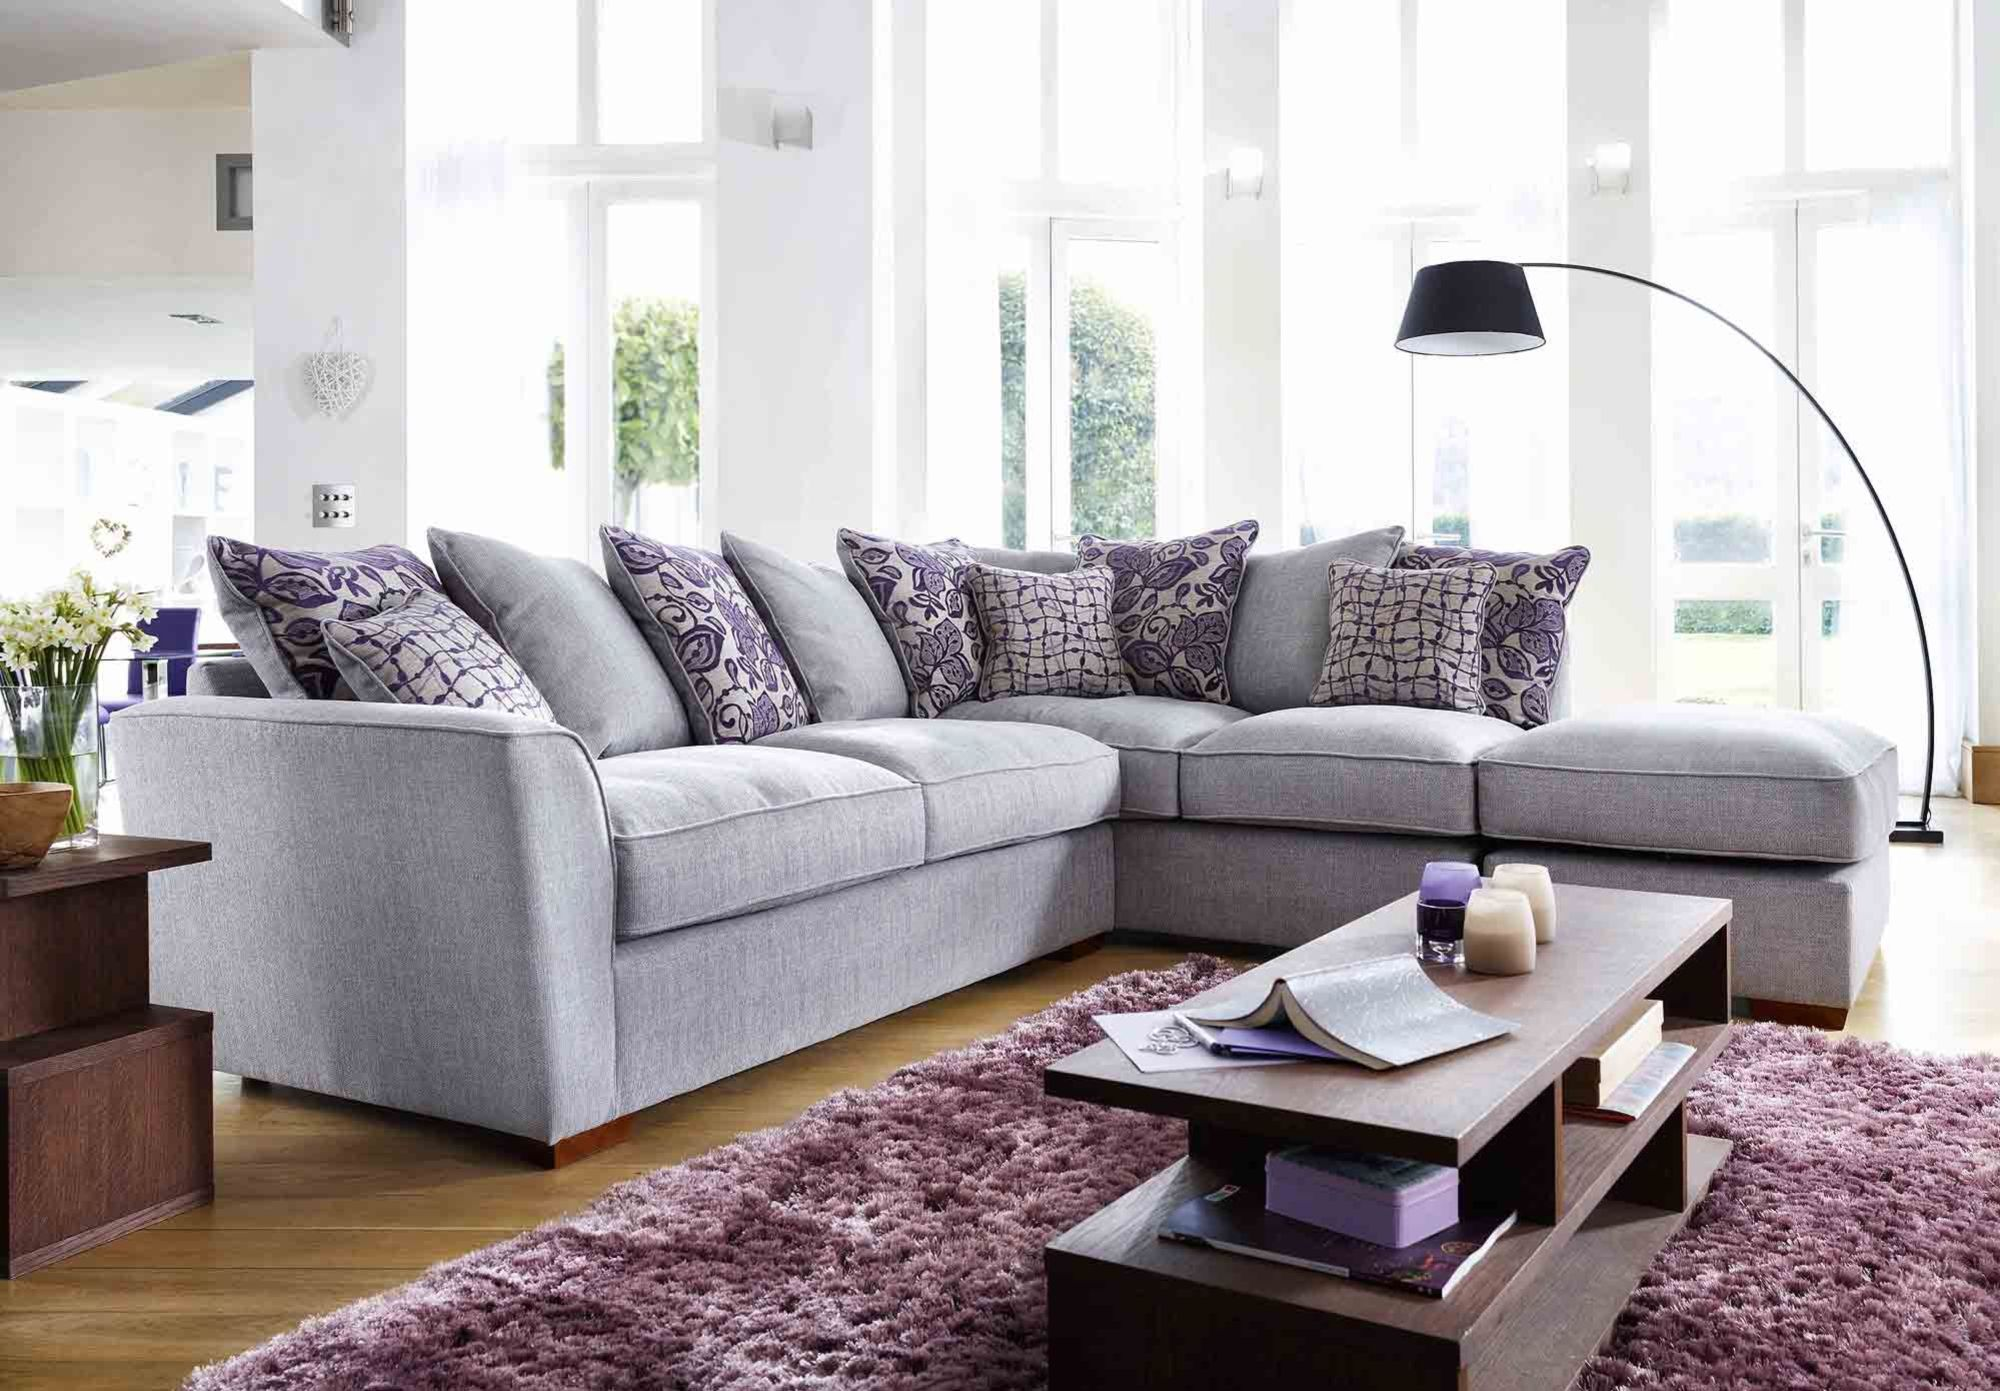 Fable LHF Scatter Back Corner Sofa at Furniture Village - Fable ...